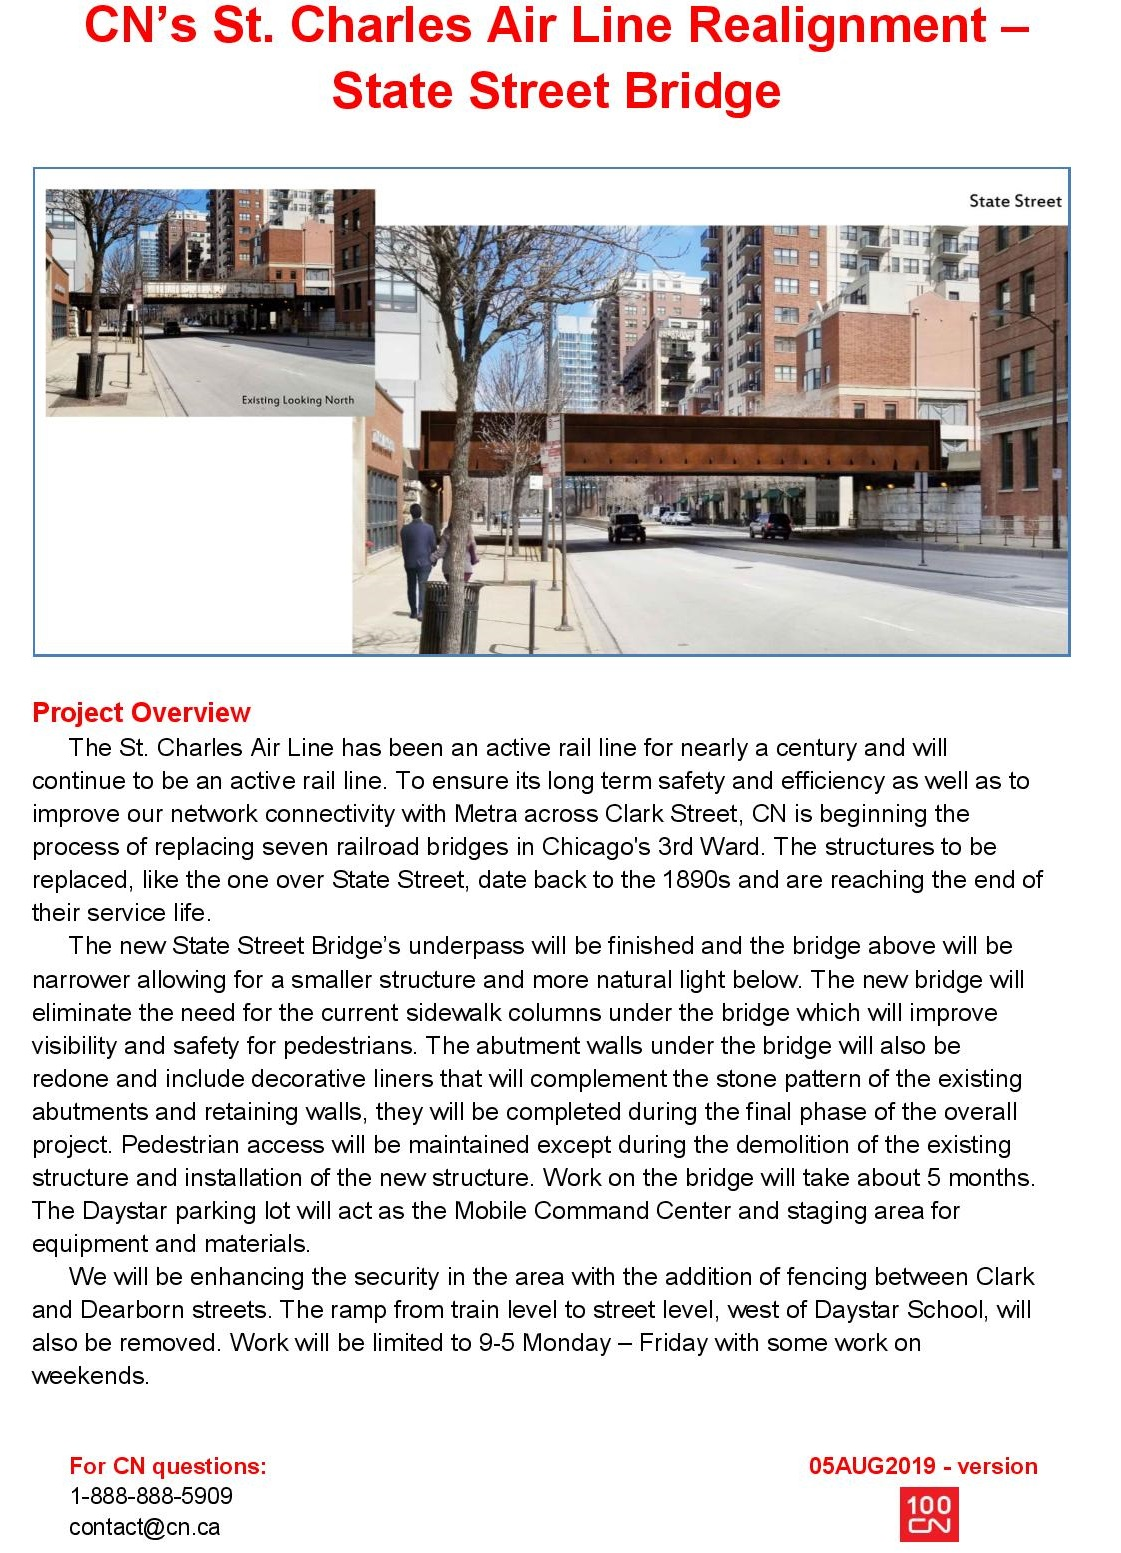 SCAL - State Street Bridge Overview - 05AUG19 (1)-page-001